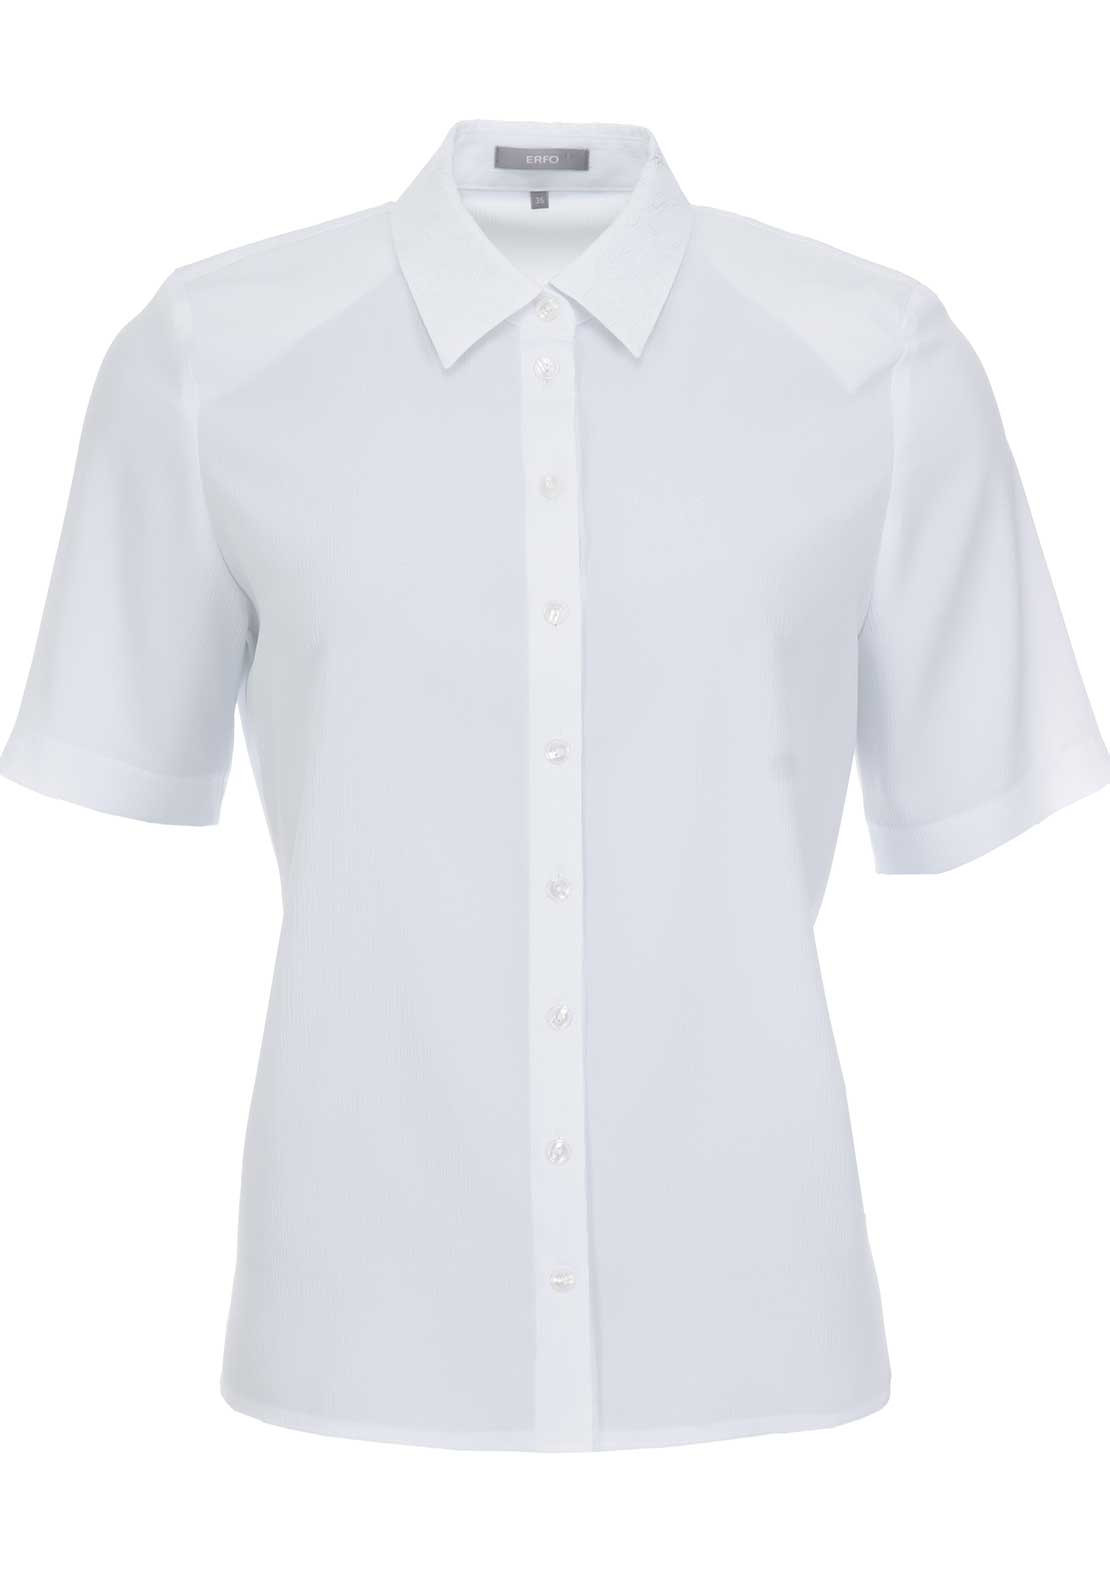 ERFO Embroidered Trim Short Sleeve Blouse, White